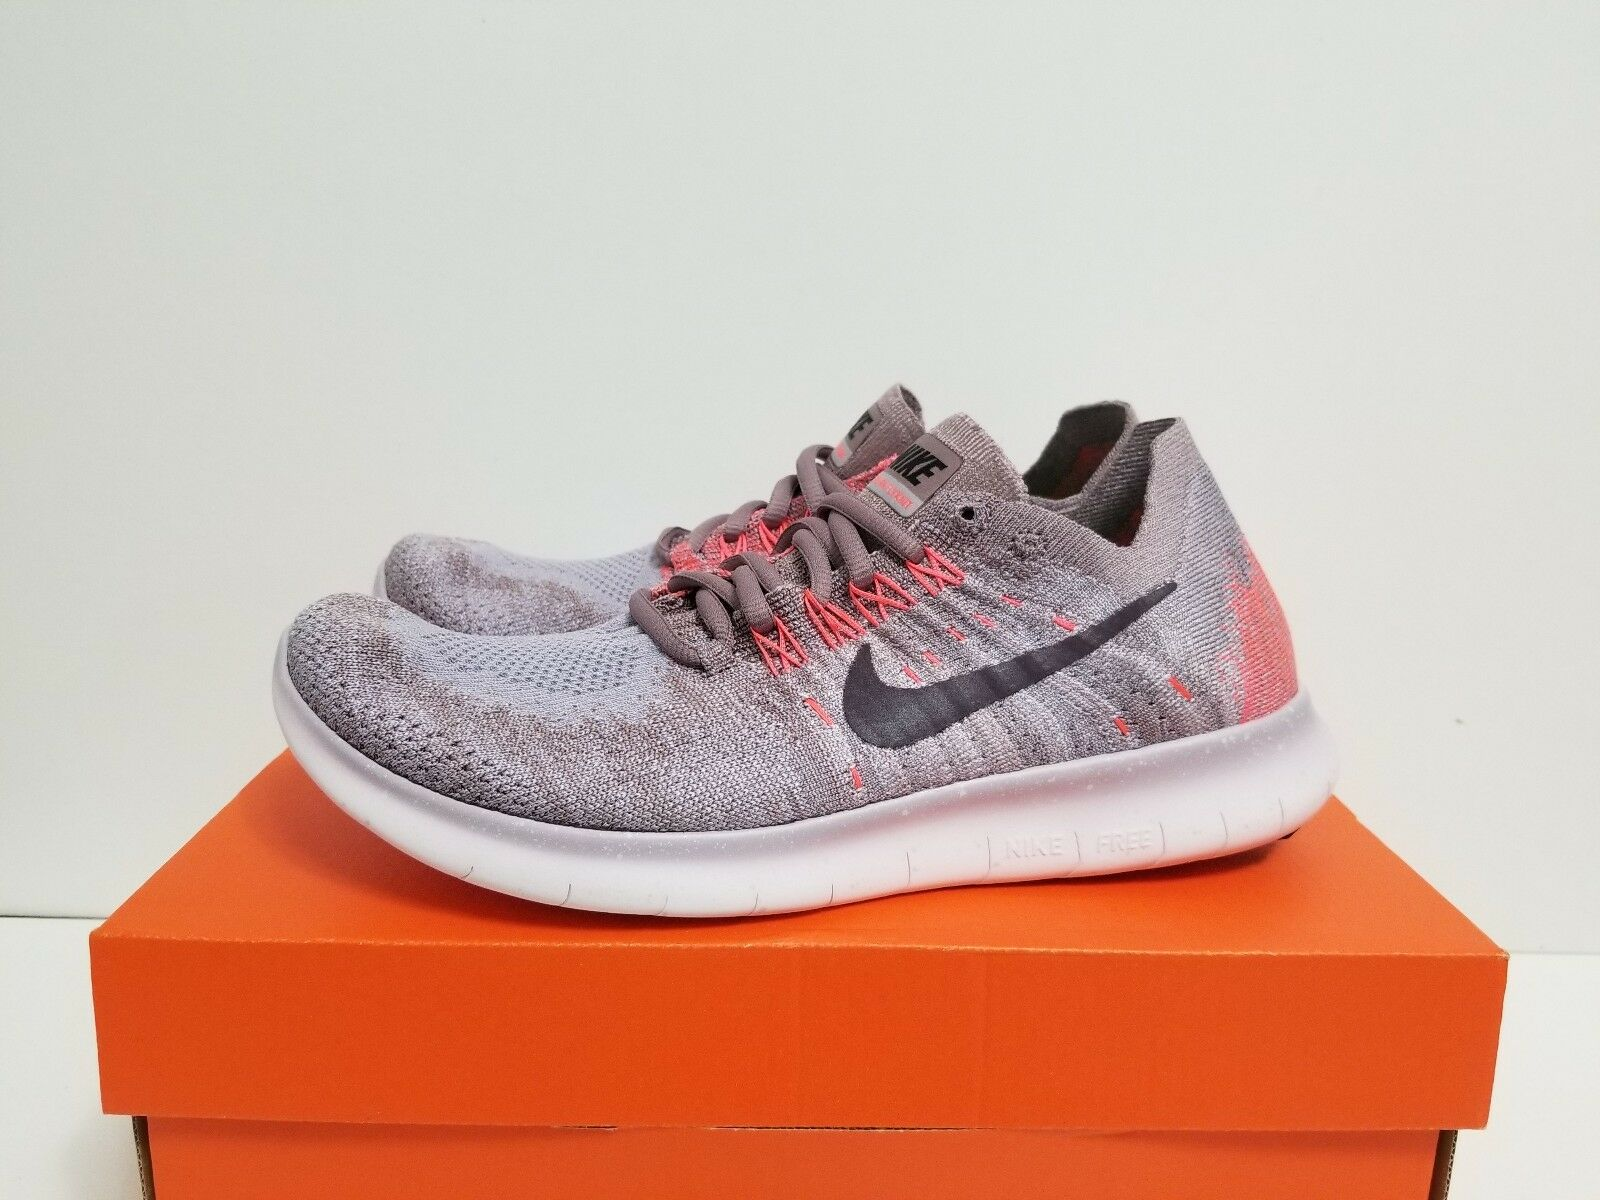 WMNS NIKE FREE RN FLYKNIT 2017 TAUPE GREY PORT WINE-SOLAR WINE-SOLAR WINE-SOLAR RED 880844 200 2a466b